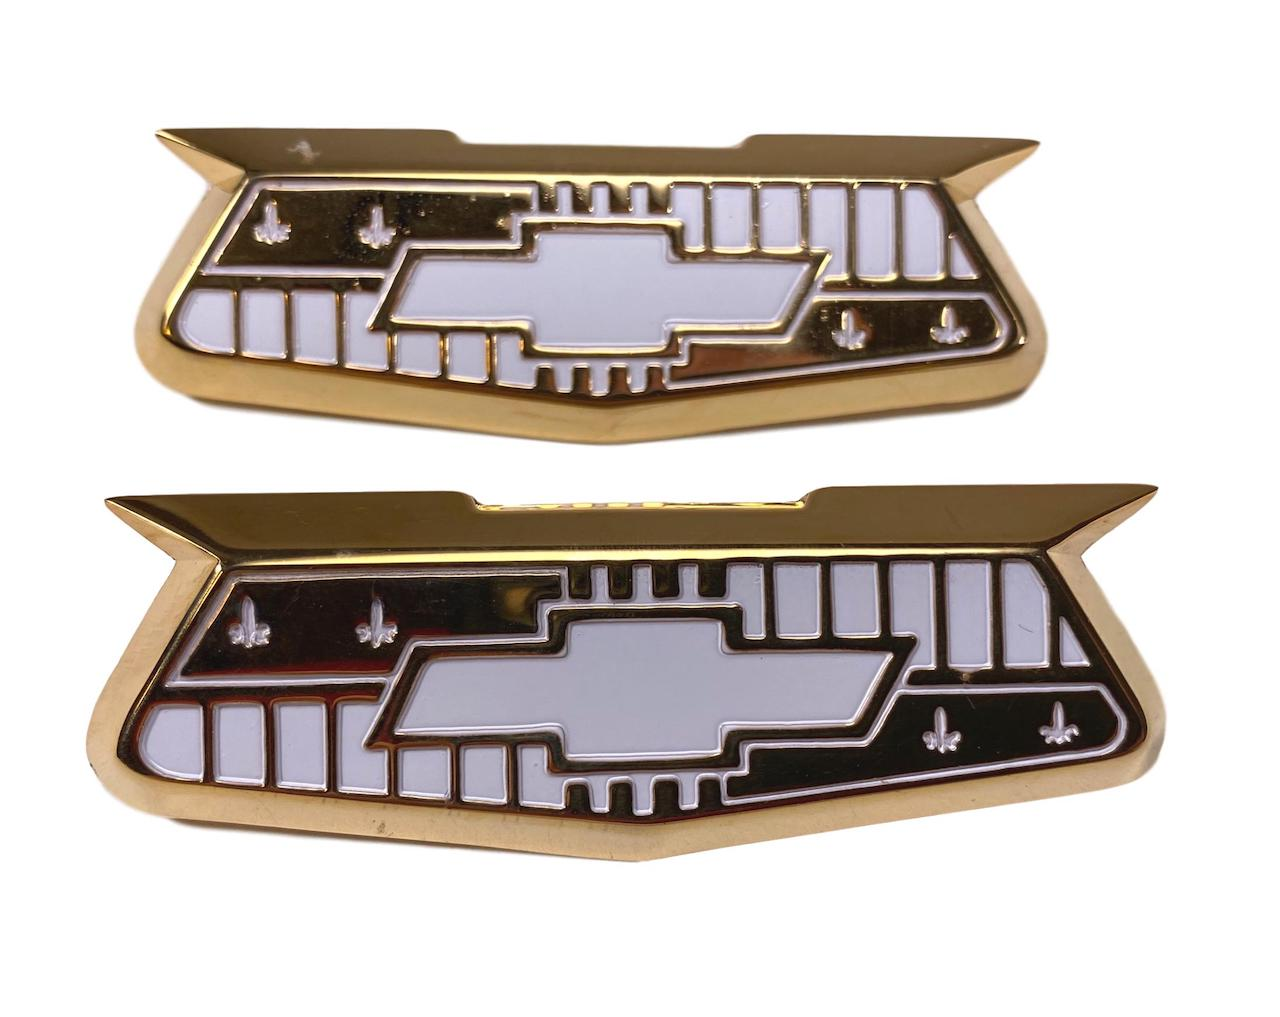 1955 1956 1957 Chevy Bel Air Crest Emblems Danchuk Brand